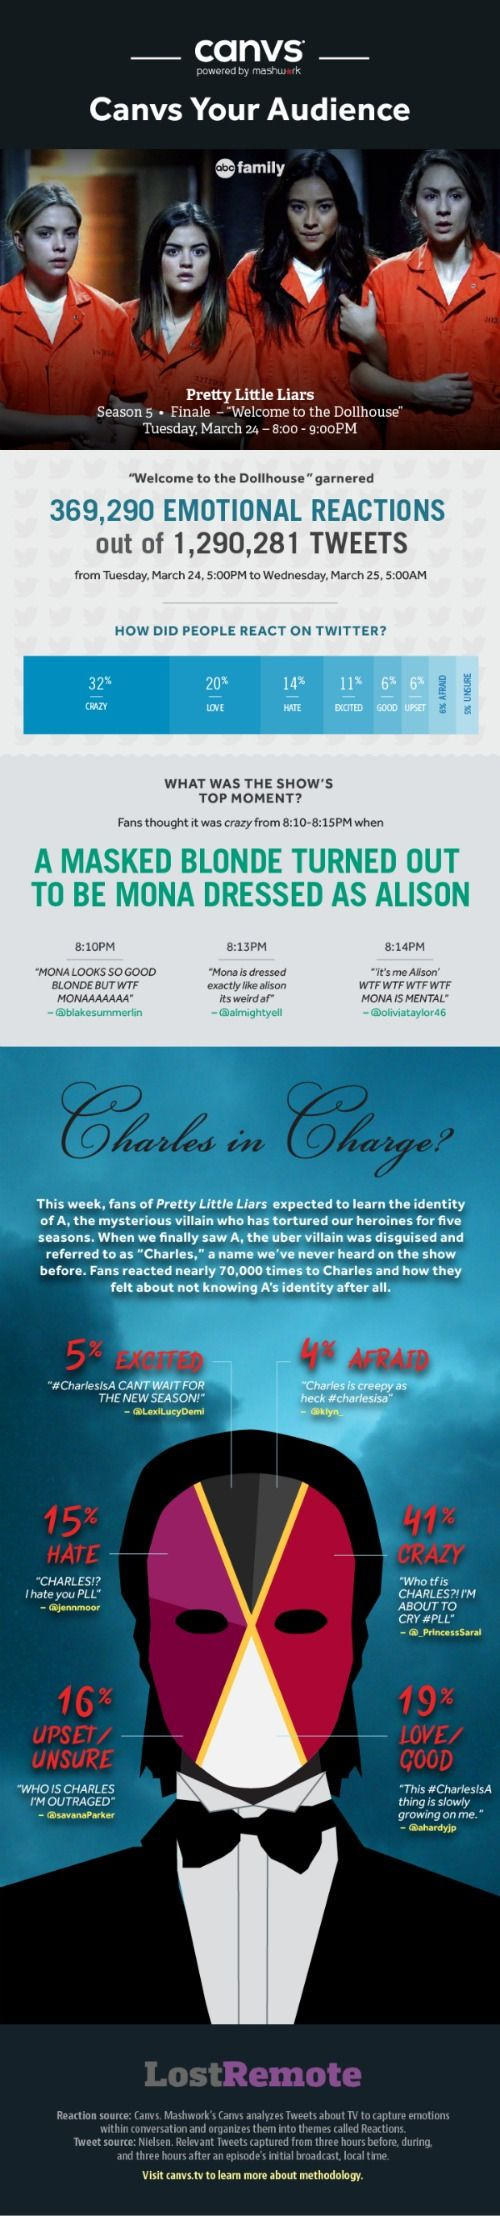 Pretty little liars quot recap 6 01 escape from the dollhouse page 7 - This Is Pretty Funny It S No Surprise That 41 Of The Reactions To The Pretty Little Liars